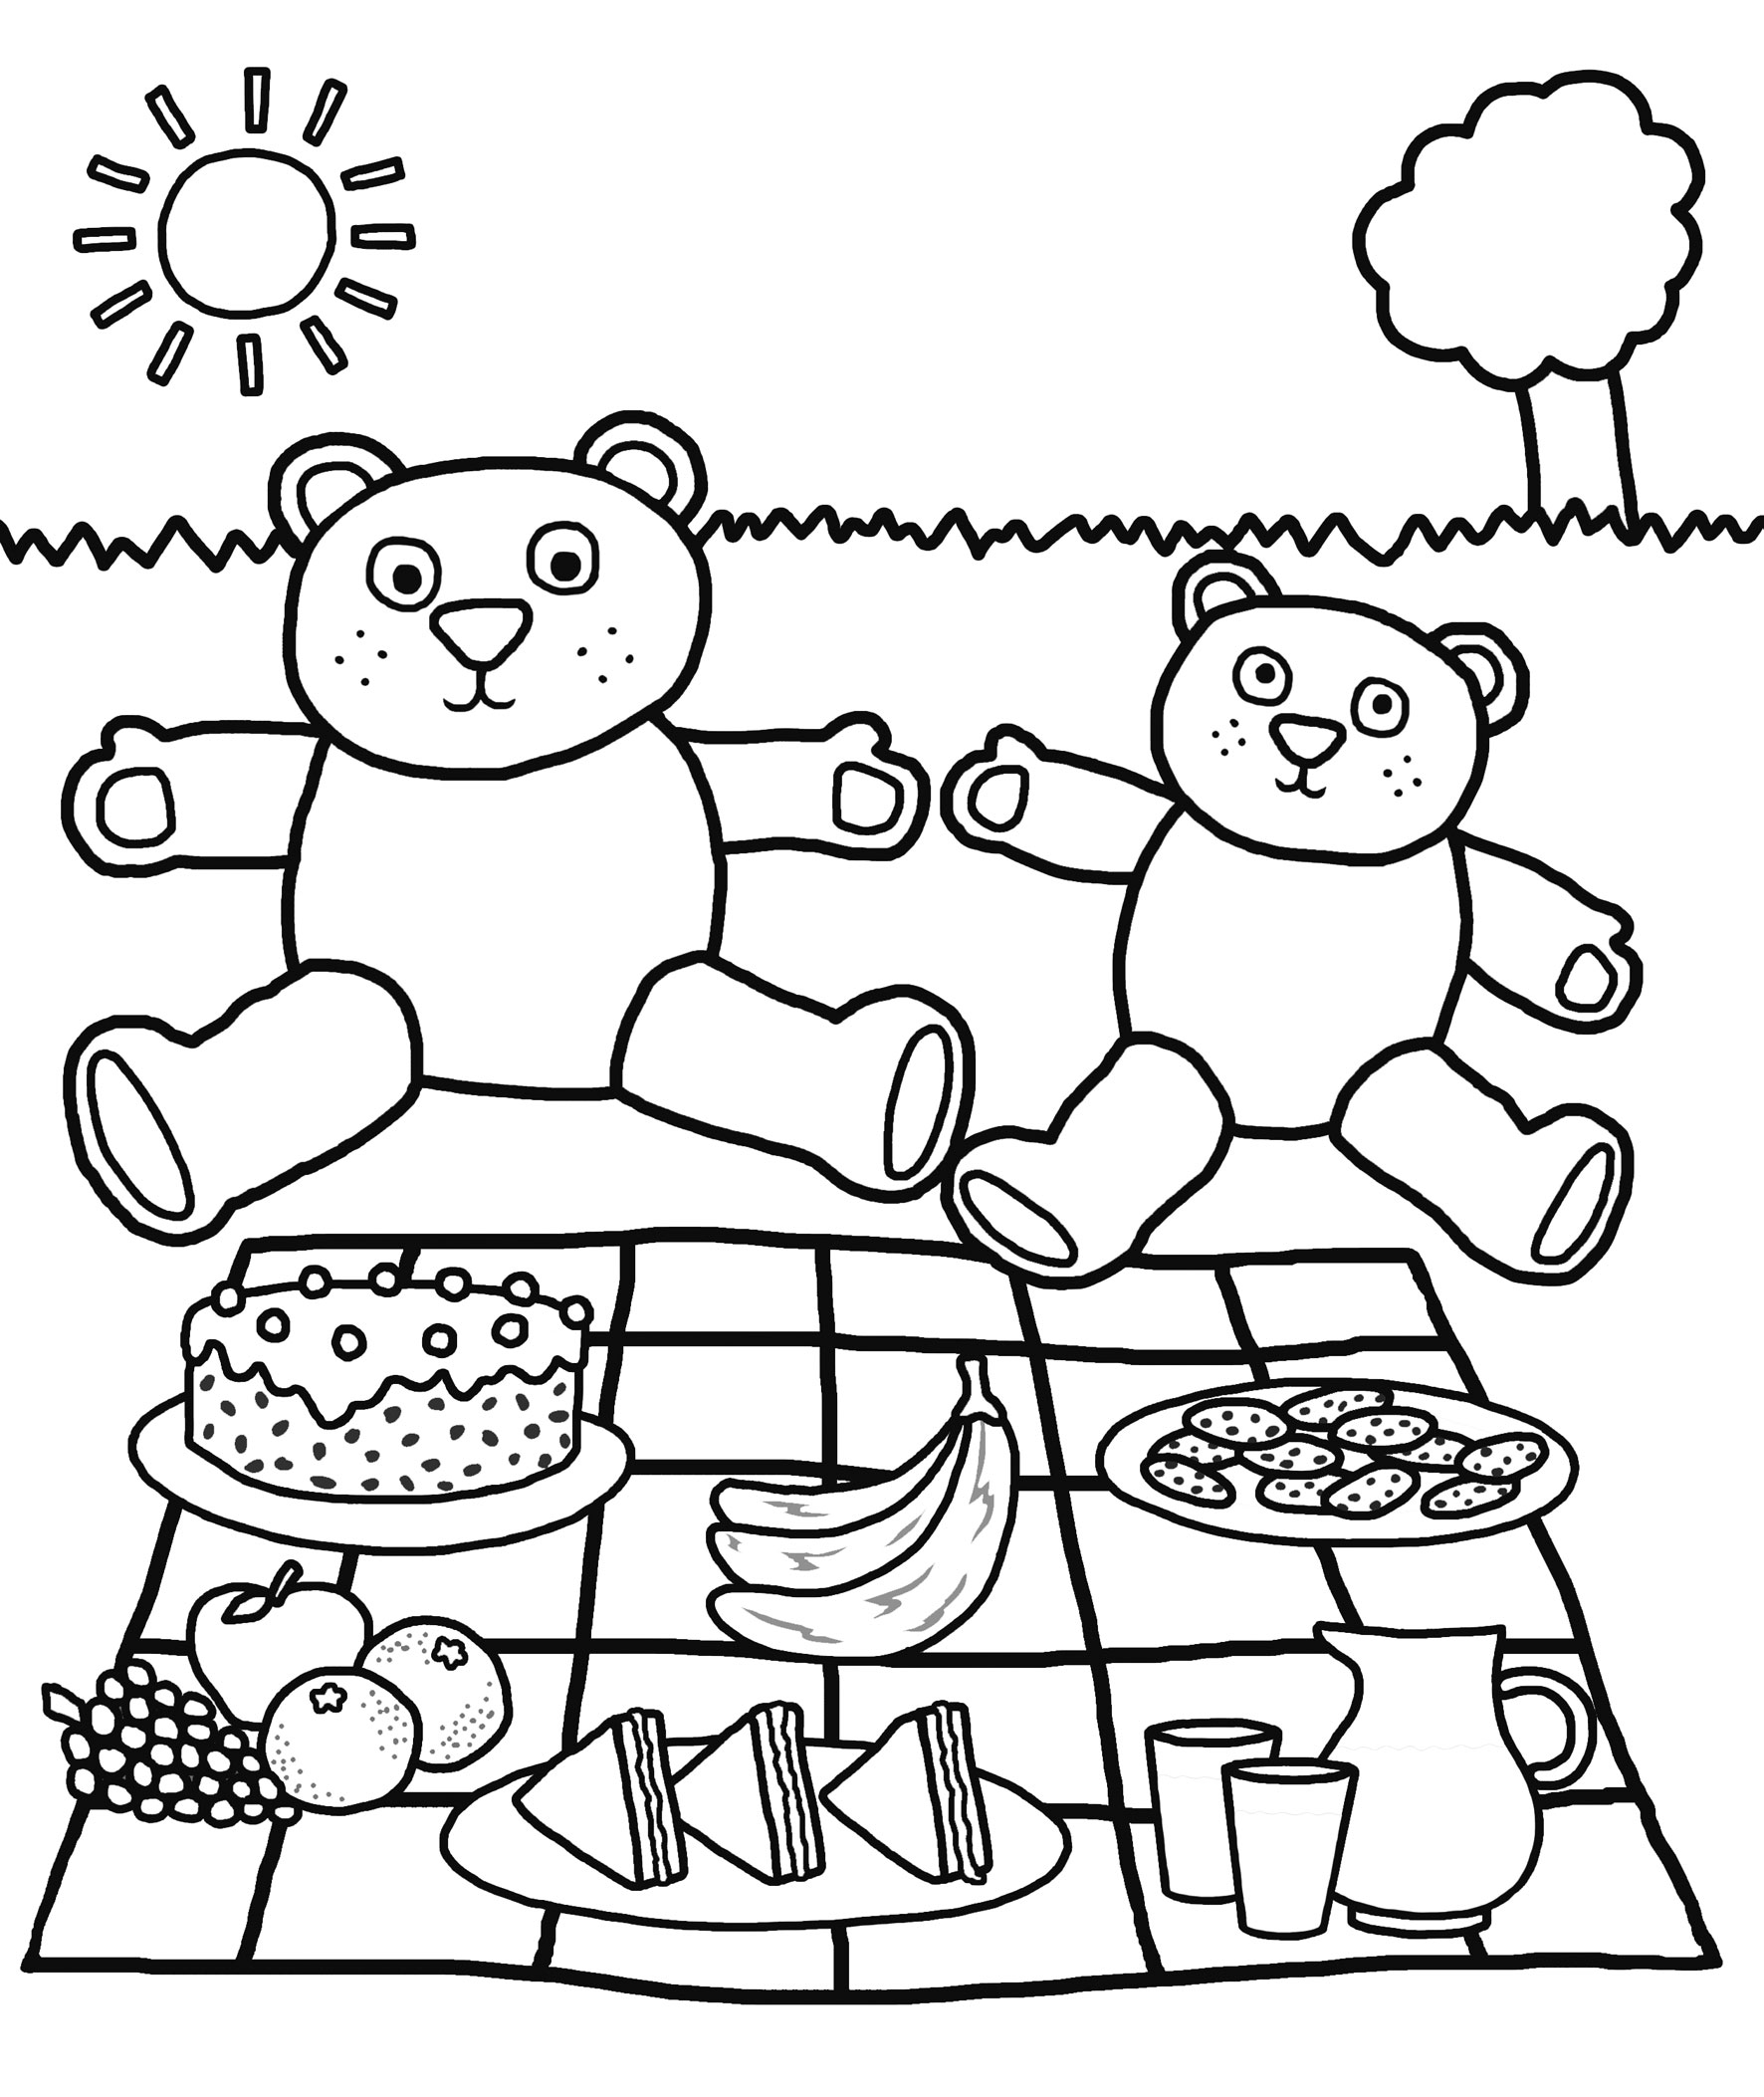 Free printable kindergarten coloring pages for kids for Free printable coloring pages for adults and kids